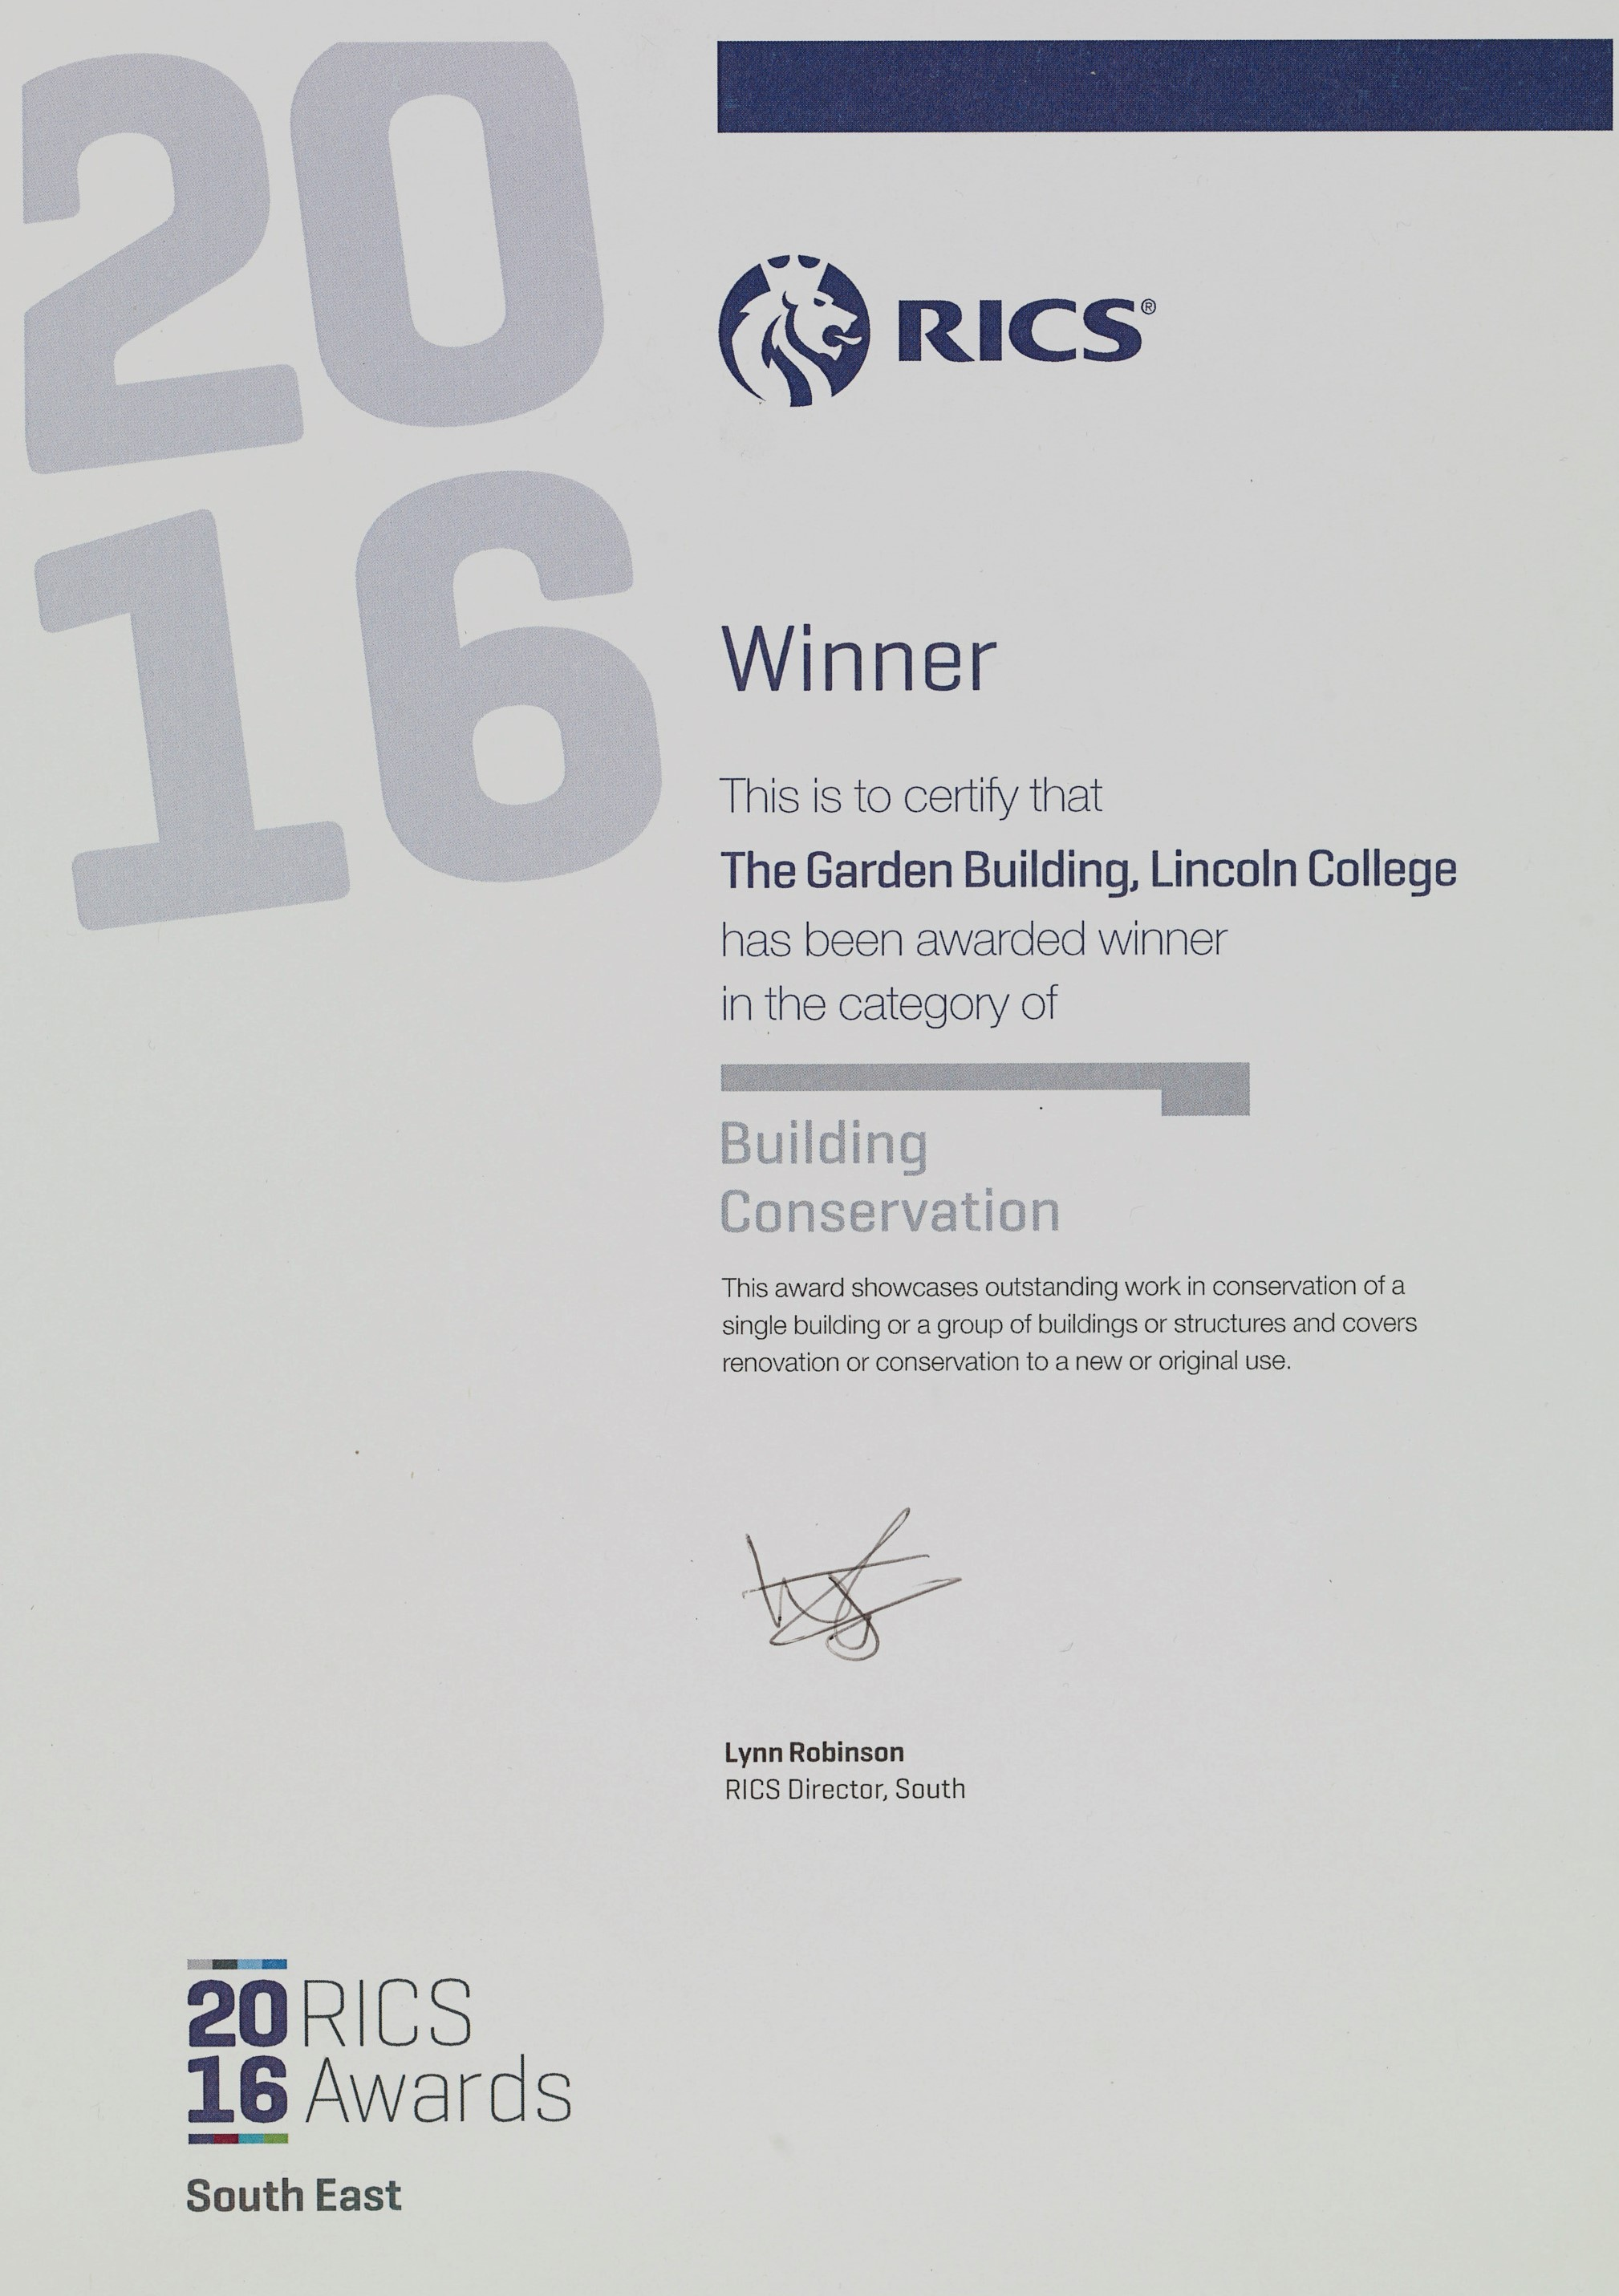 Lincoln College Garden Building by Stanton Williams won the RIBA Building Conservation Award 2016